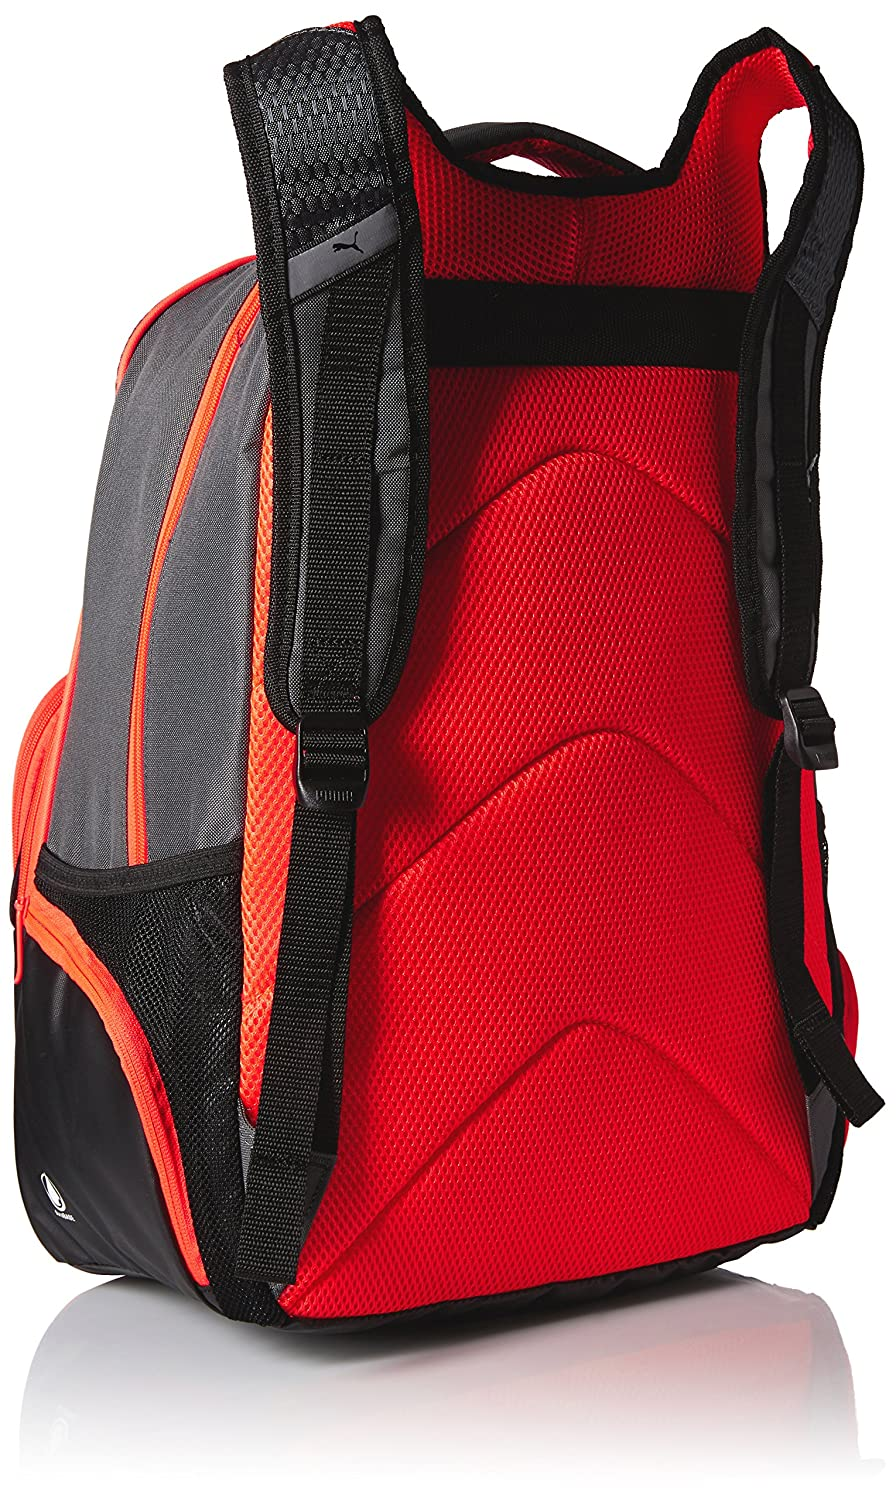 Puma Men s Audible 19 Inch Ball Backpack, Black